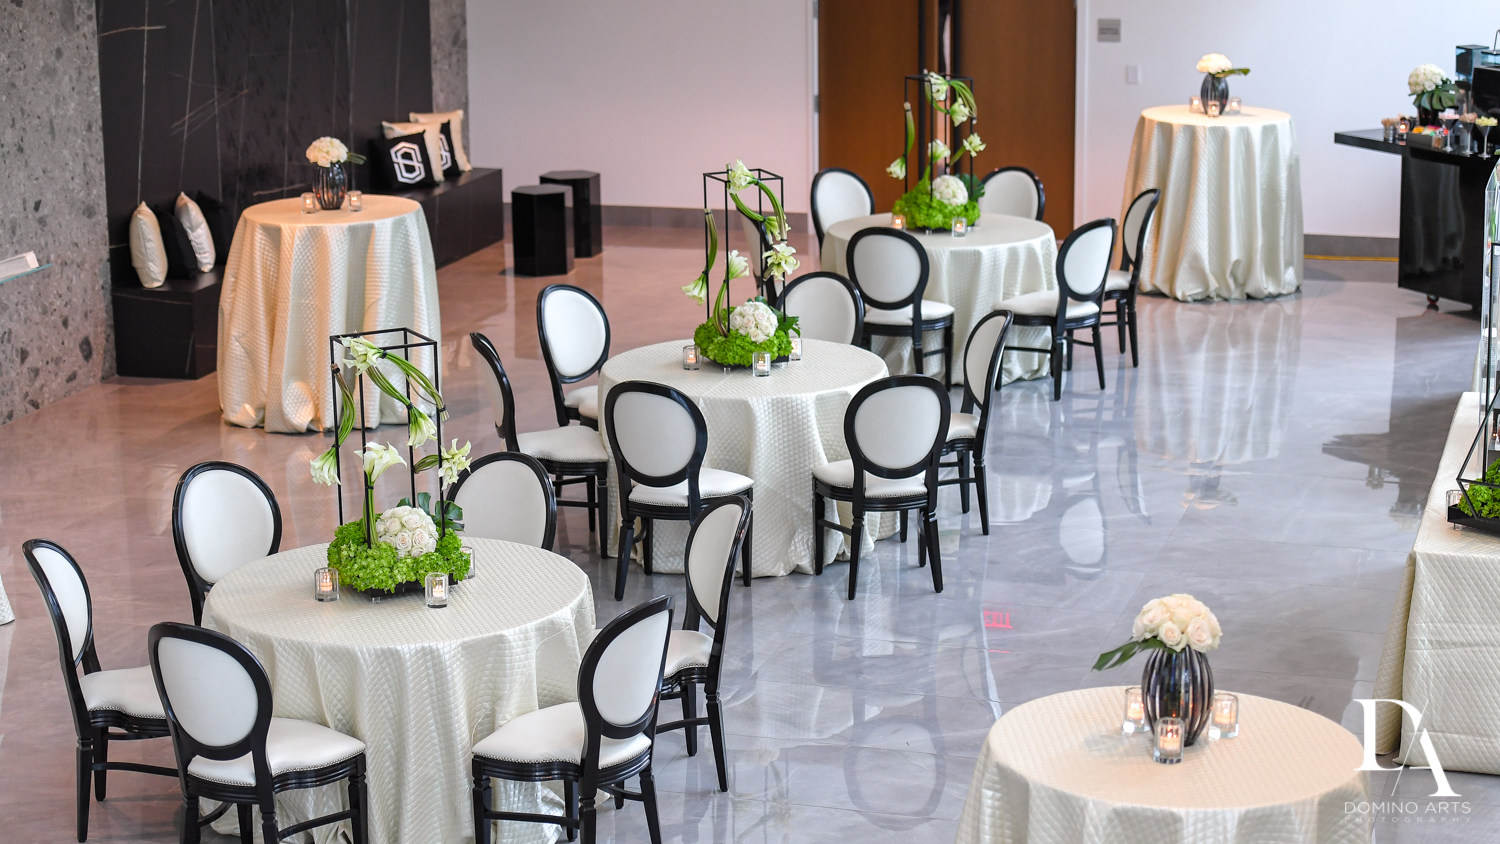 COVID set up at Monochrome Bar Mitzvah Ceremony at Aventura Chabad by Domino Arts Photography